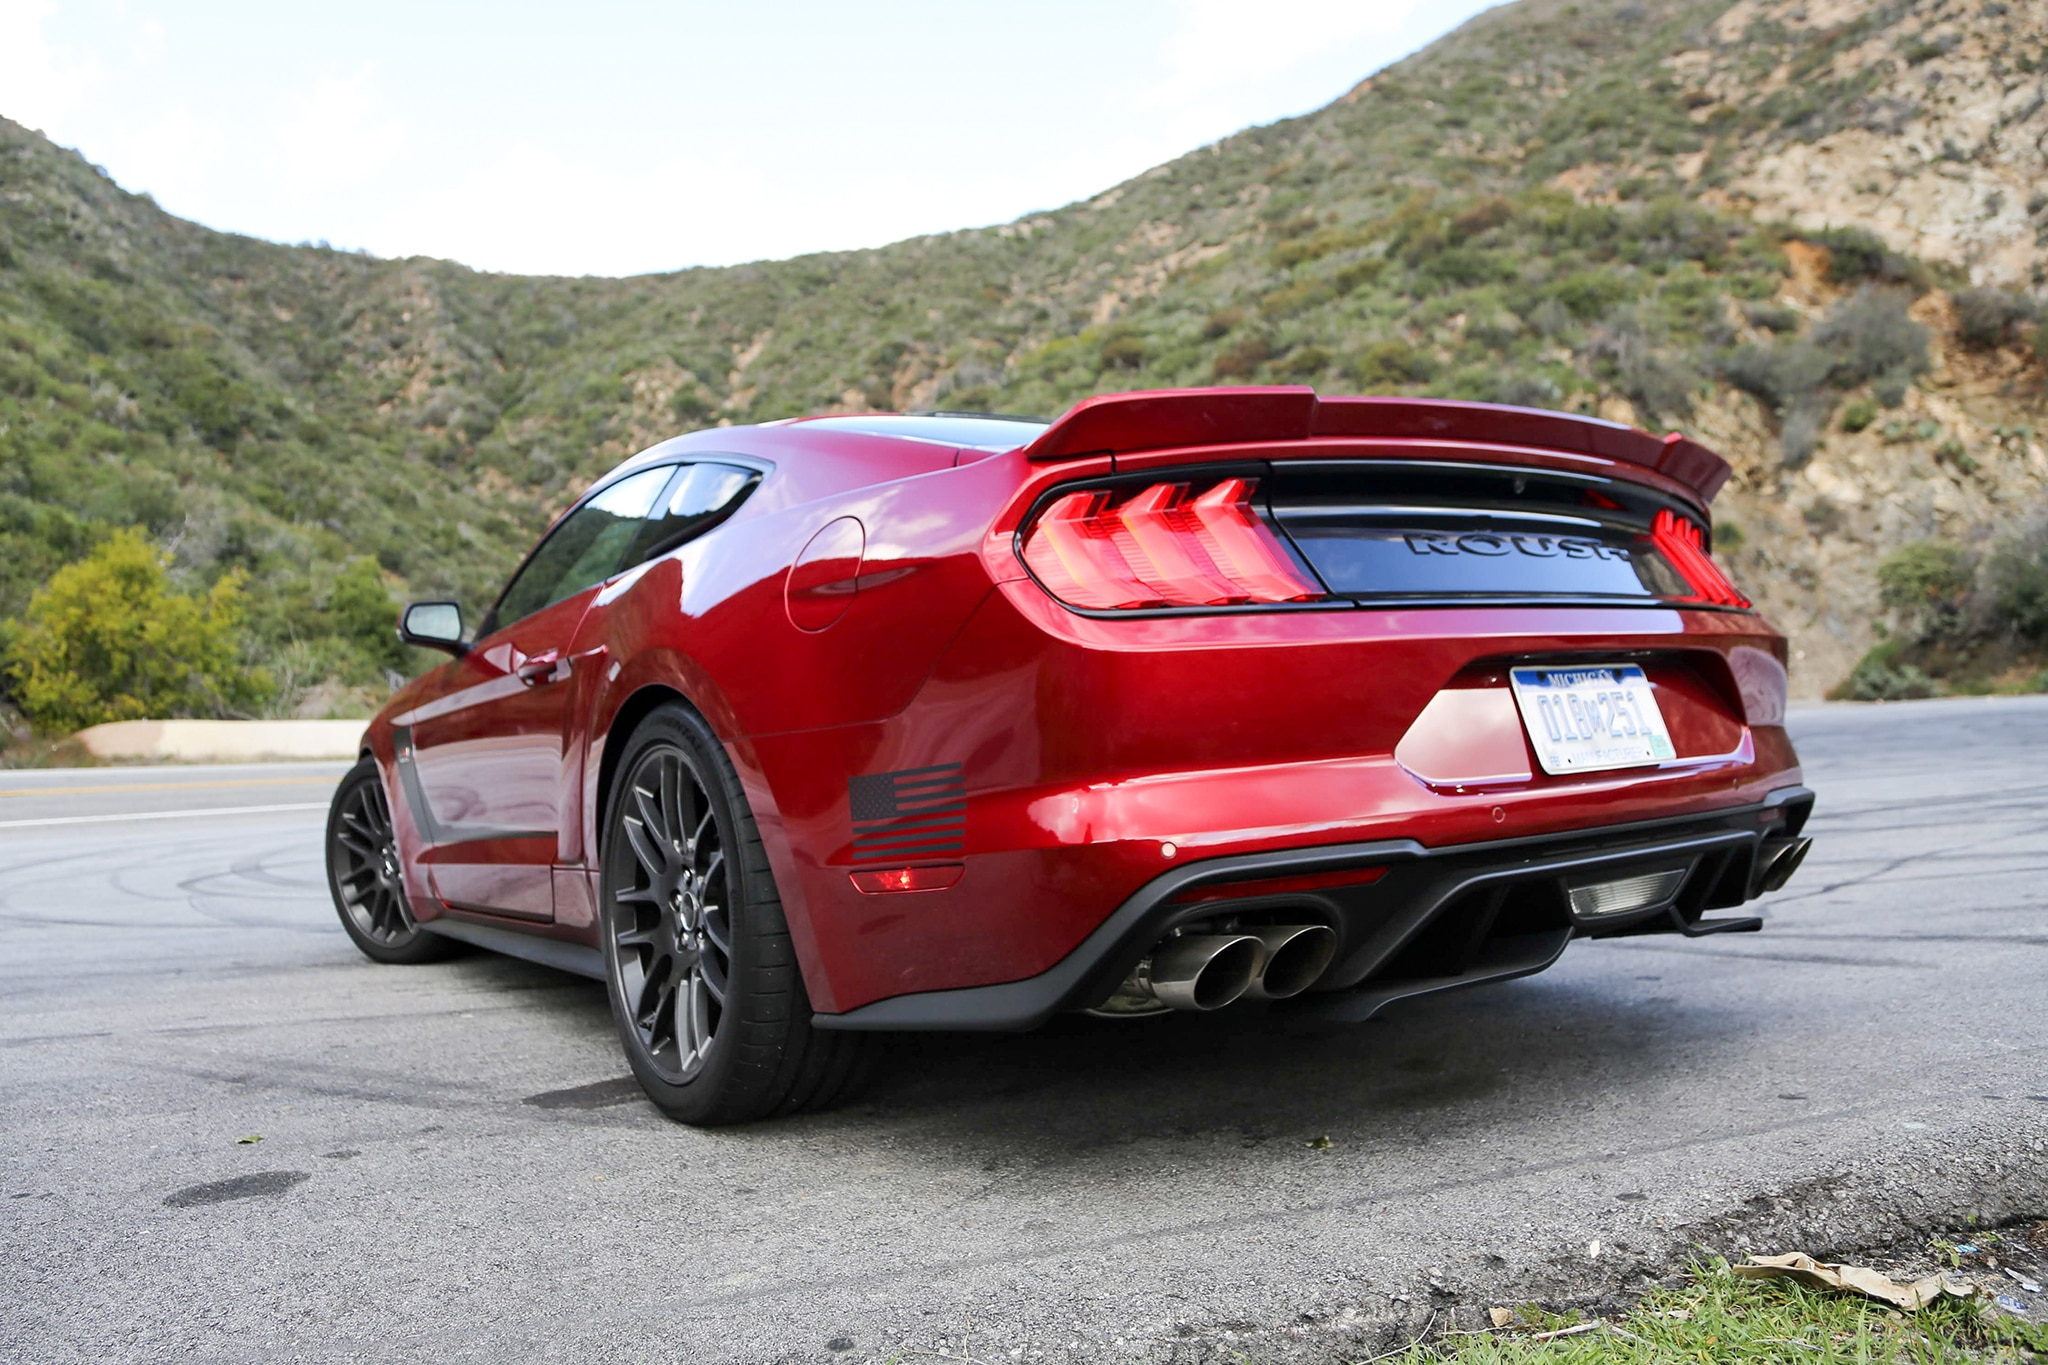 2019 Ford Mustang Roush Stage 3 Review: Stacked with Power ...